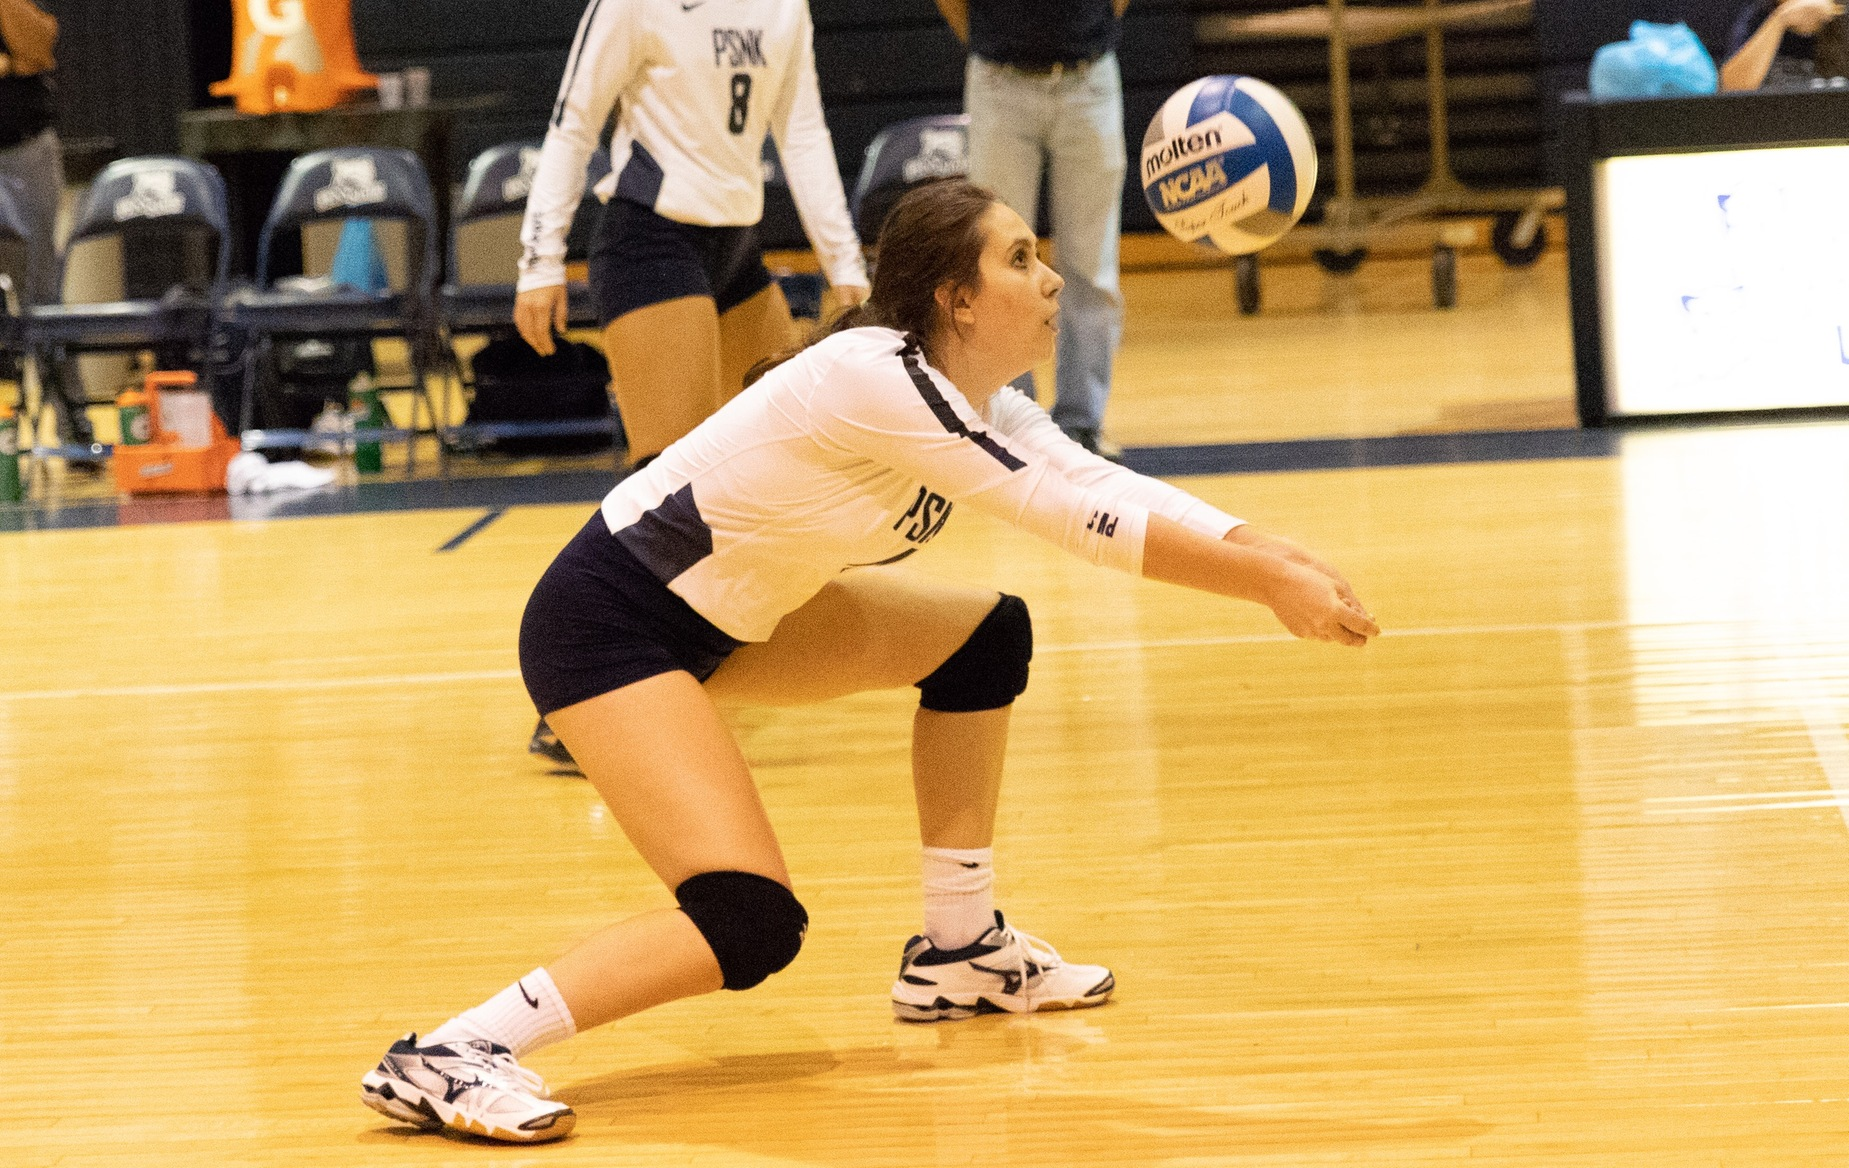 Women's Volleyball Brings Home a Win